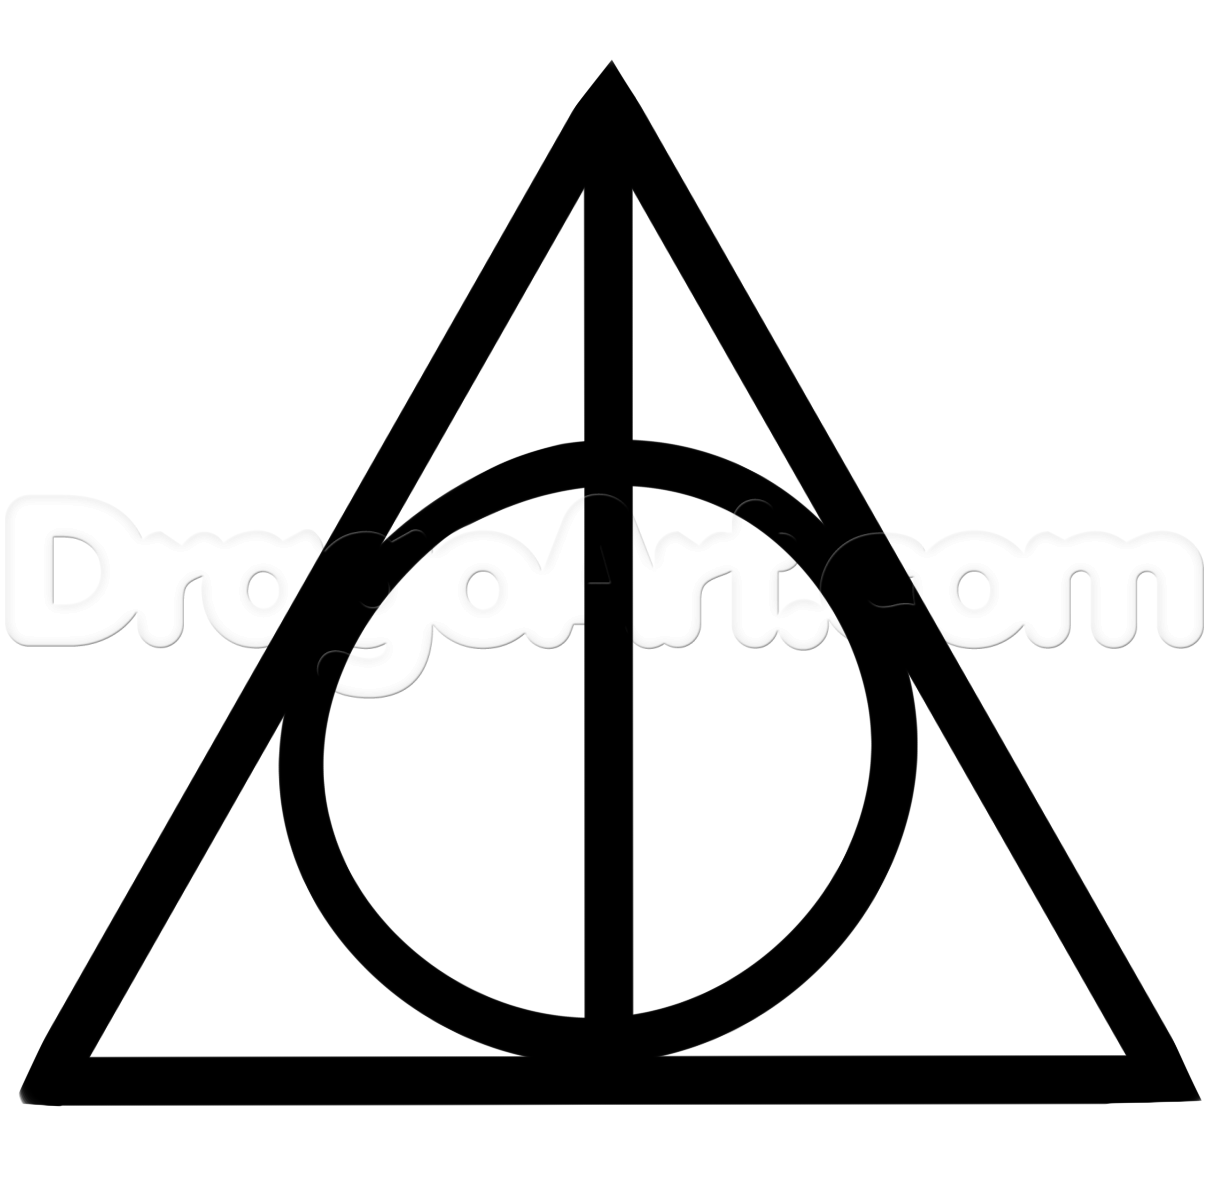 Drawn symbol deathly hallows Deathly Hallows to Movies the